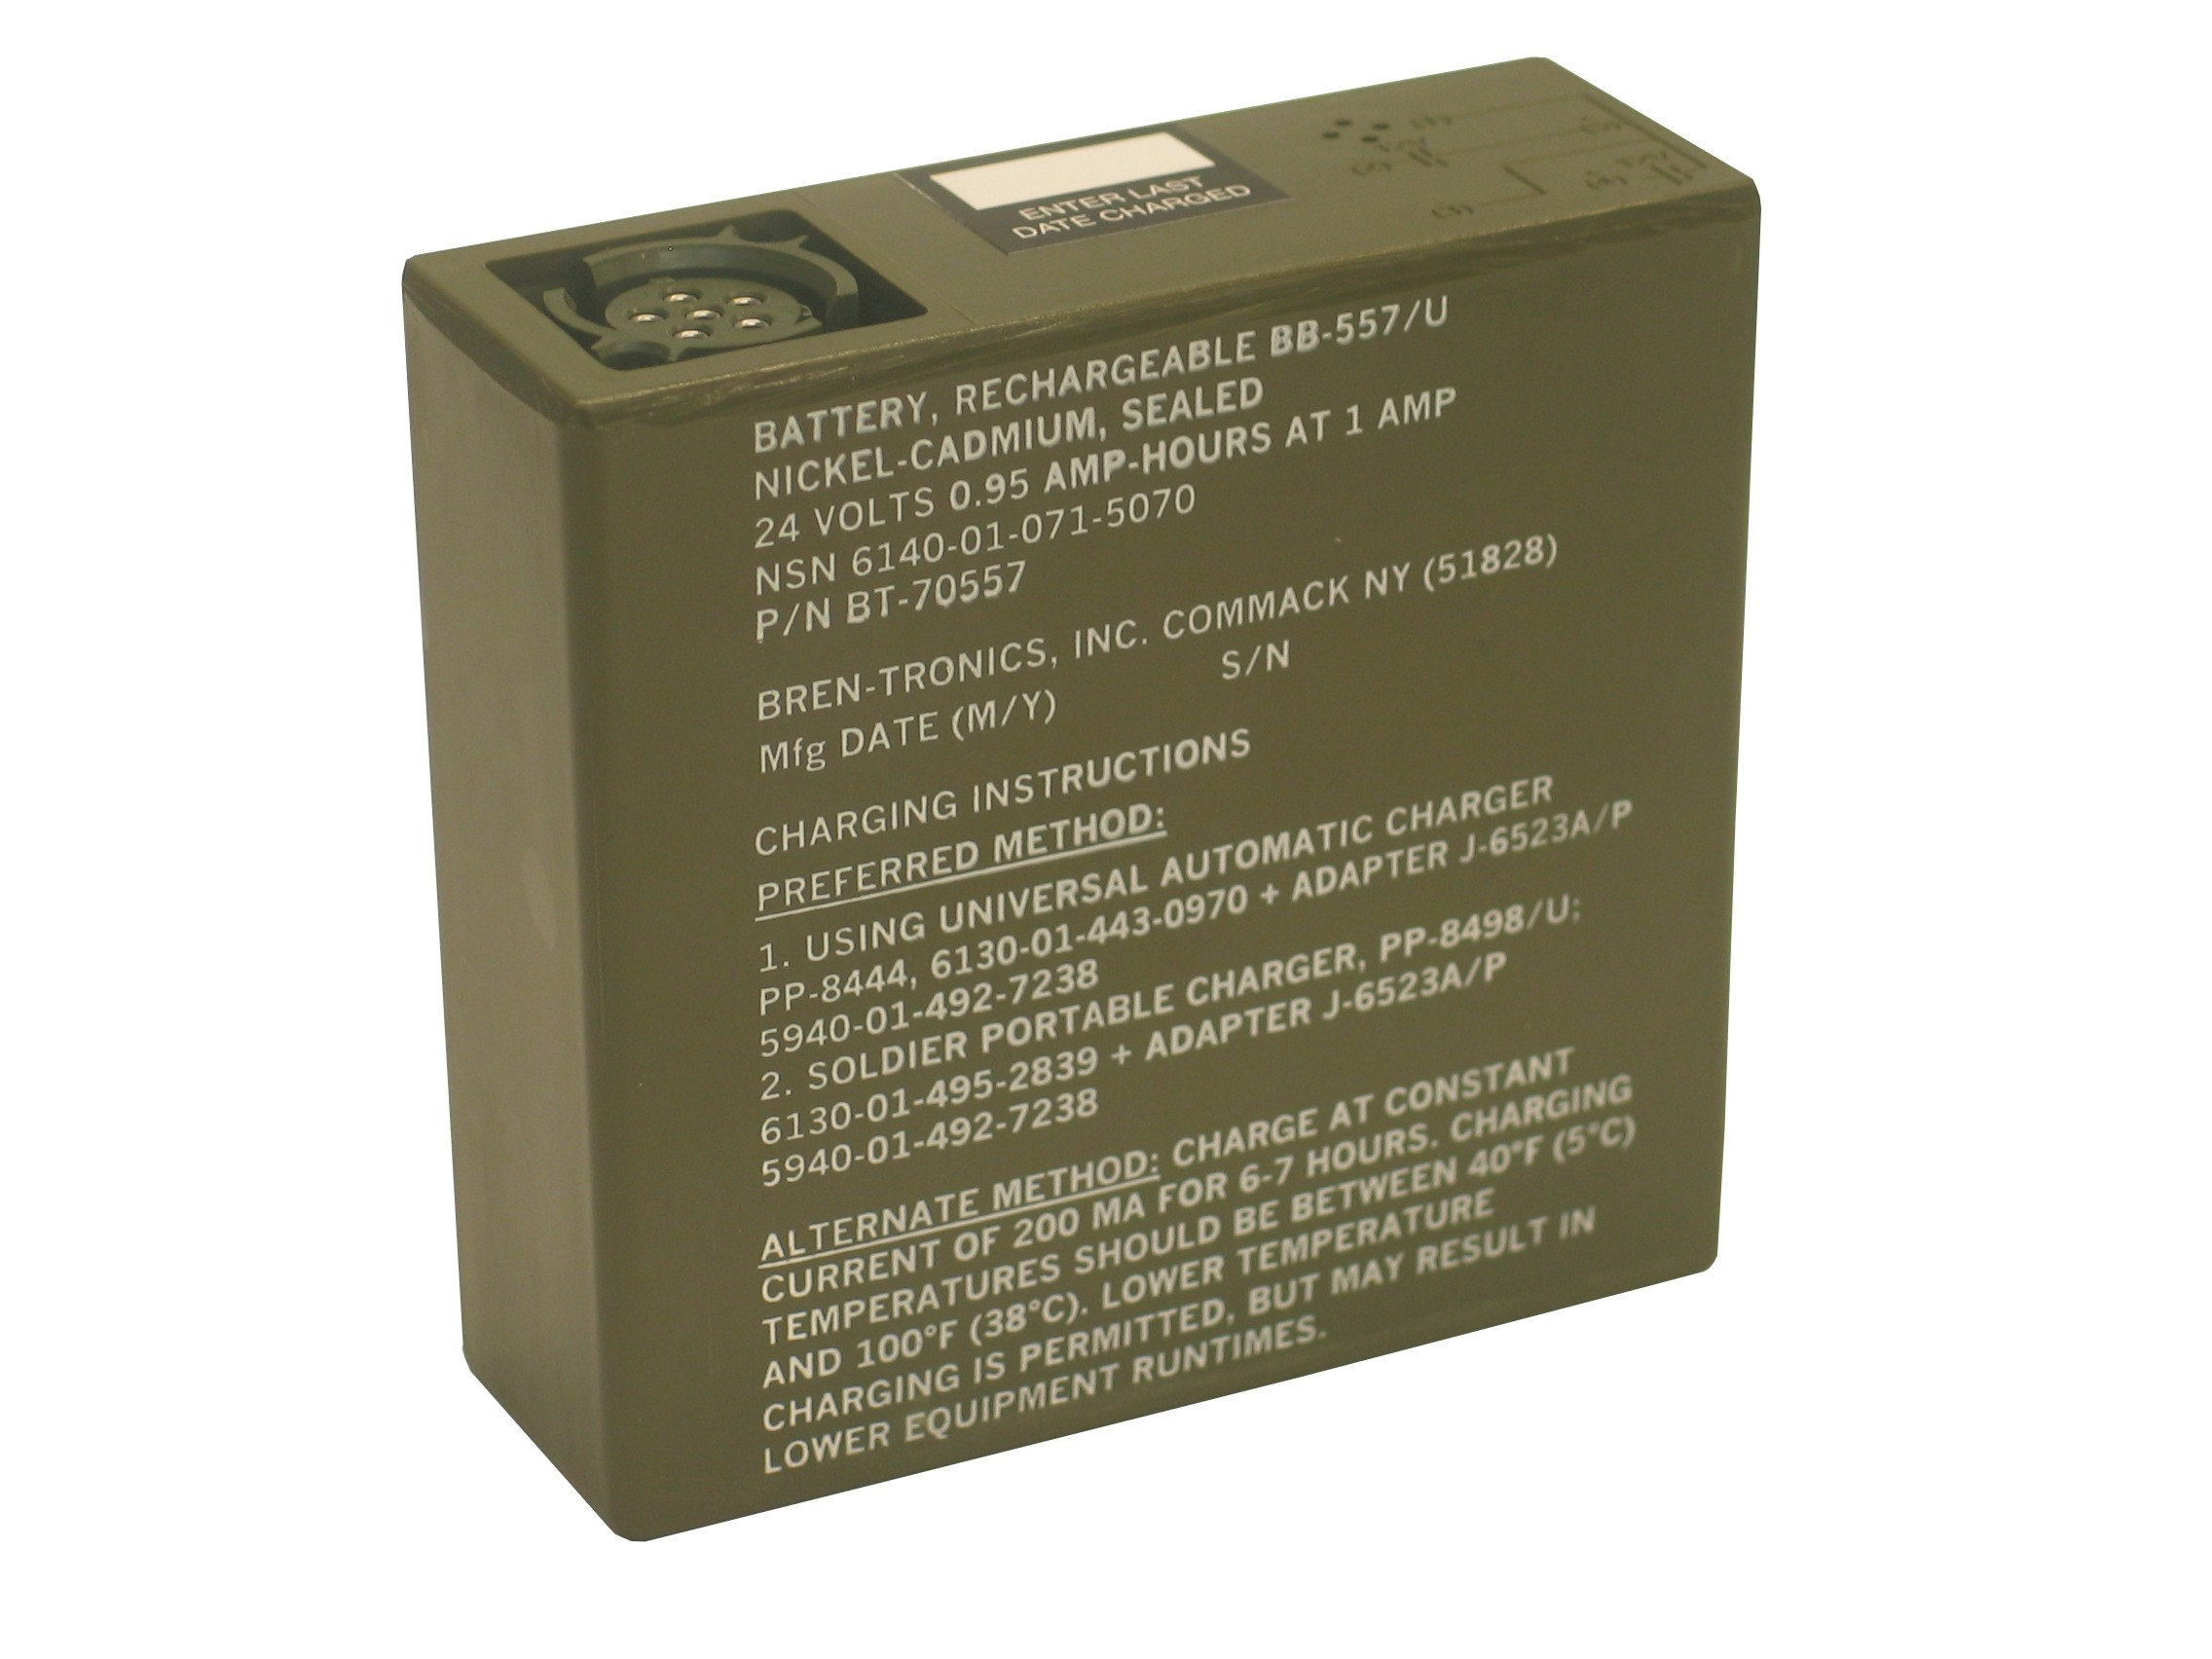 Battery: BT-70557 (BB-557/U)